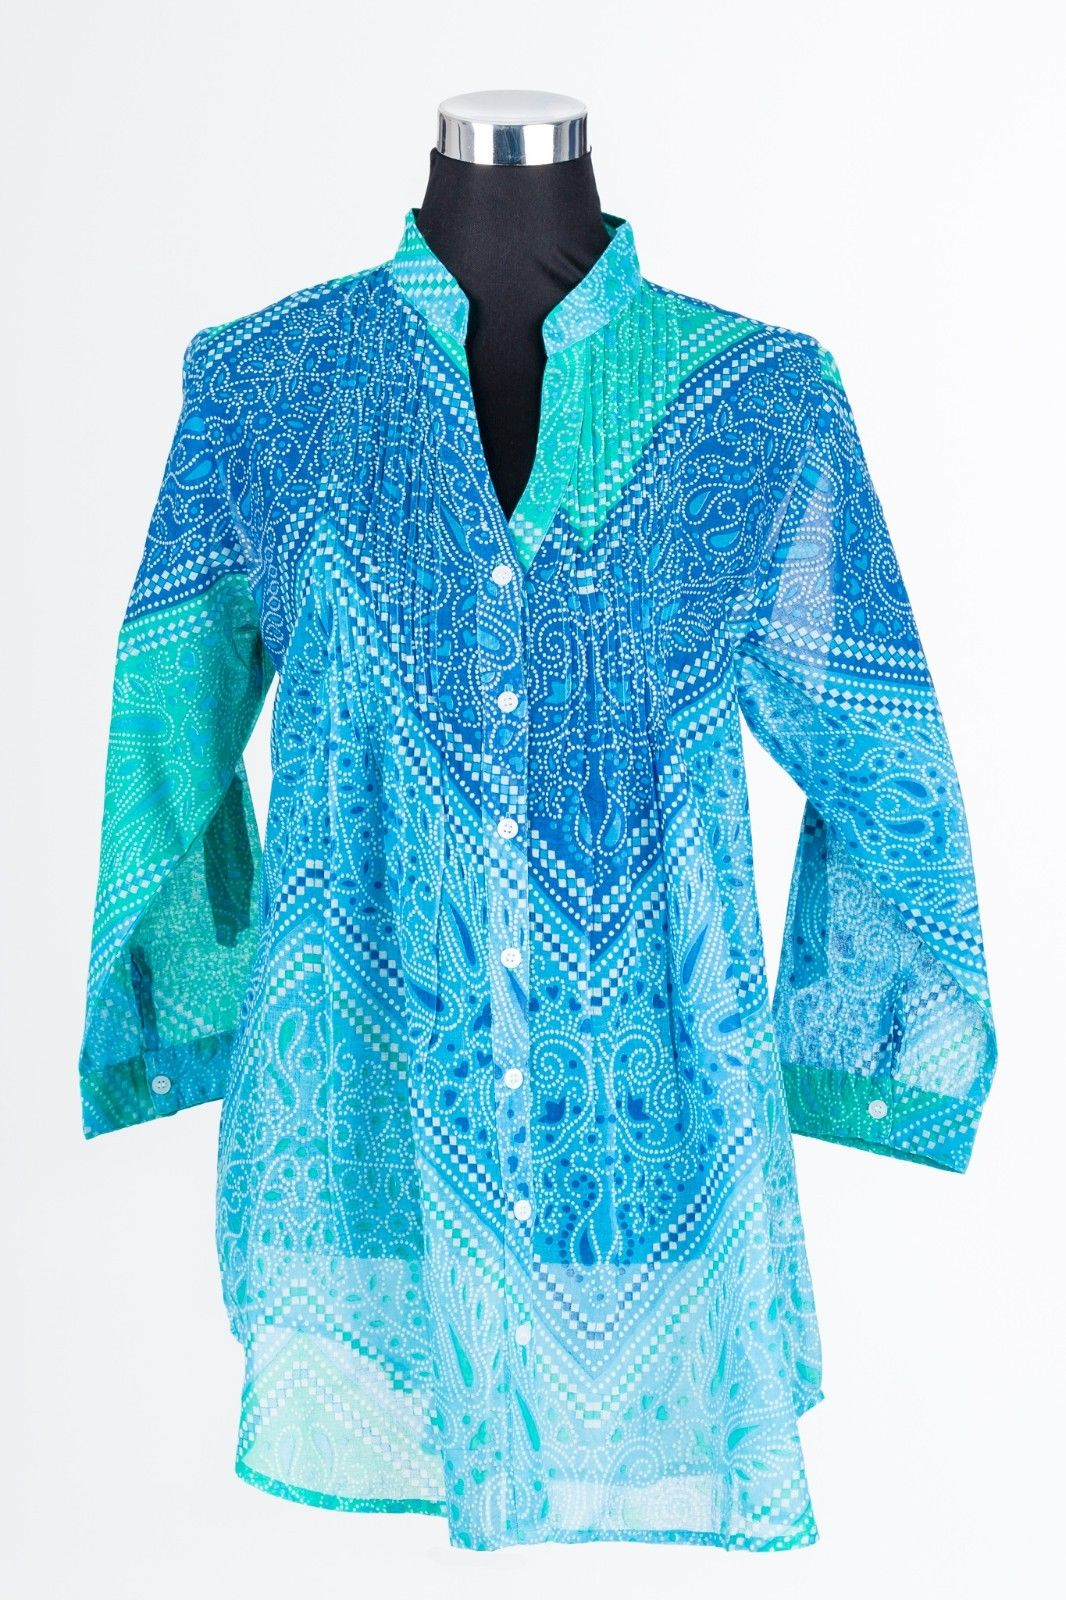 Ladies-Womens-Tunic-Beach-Shirt-Cotton-Blue-Sizes-10-to-20-Plus-Size-382139598465